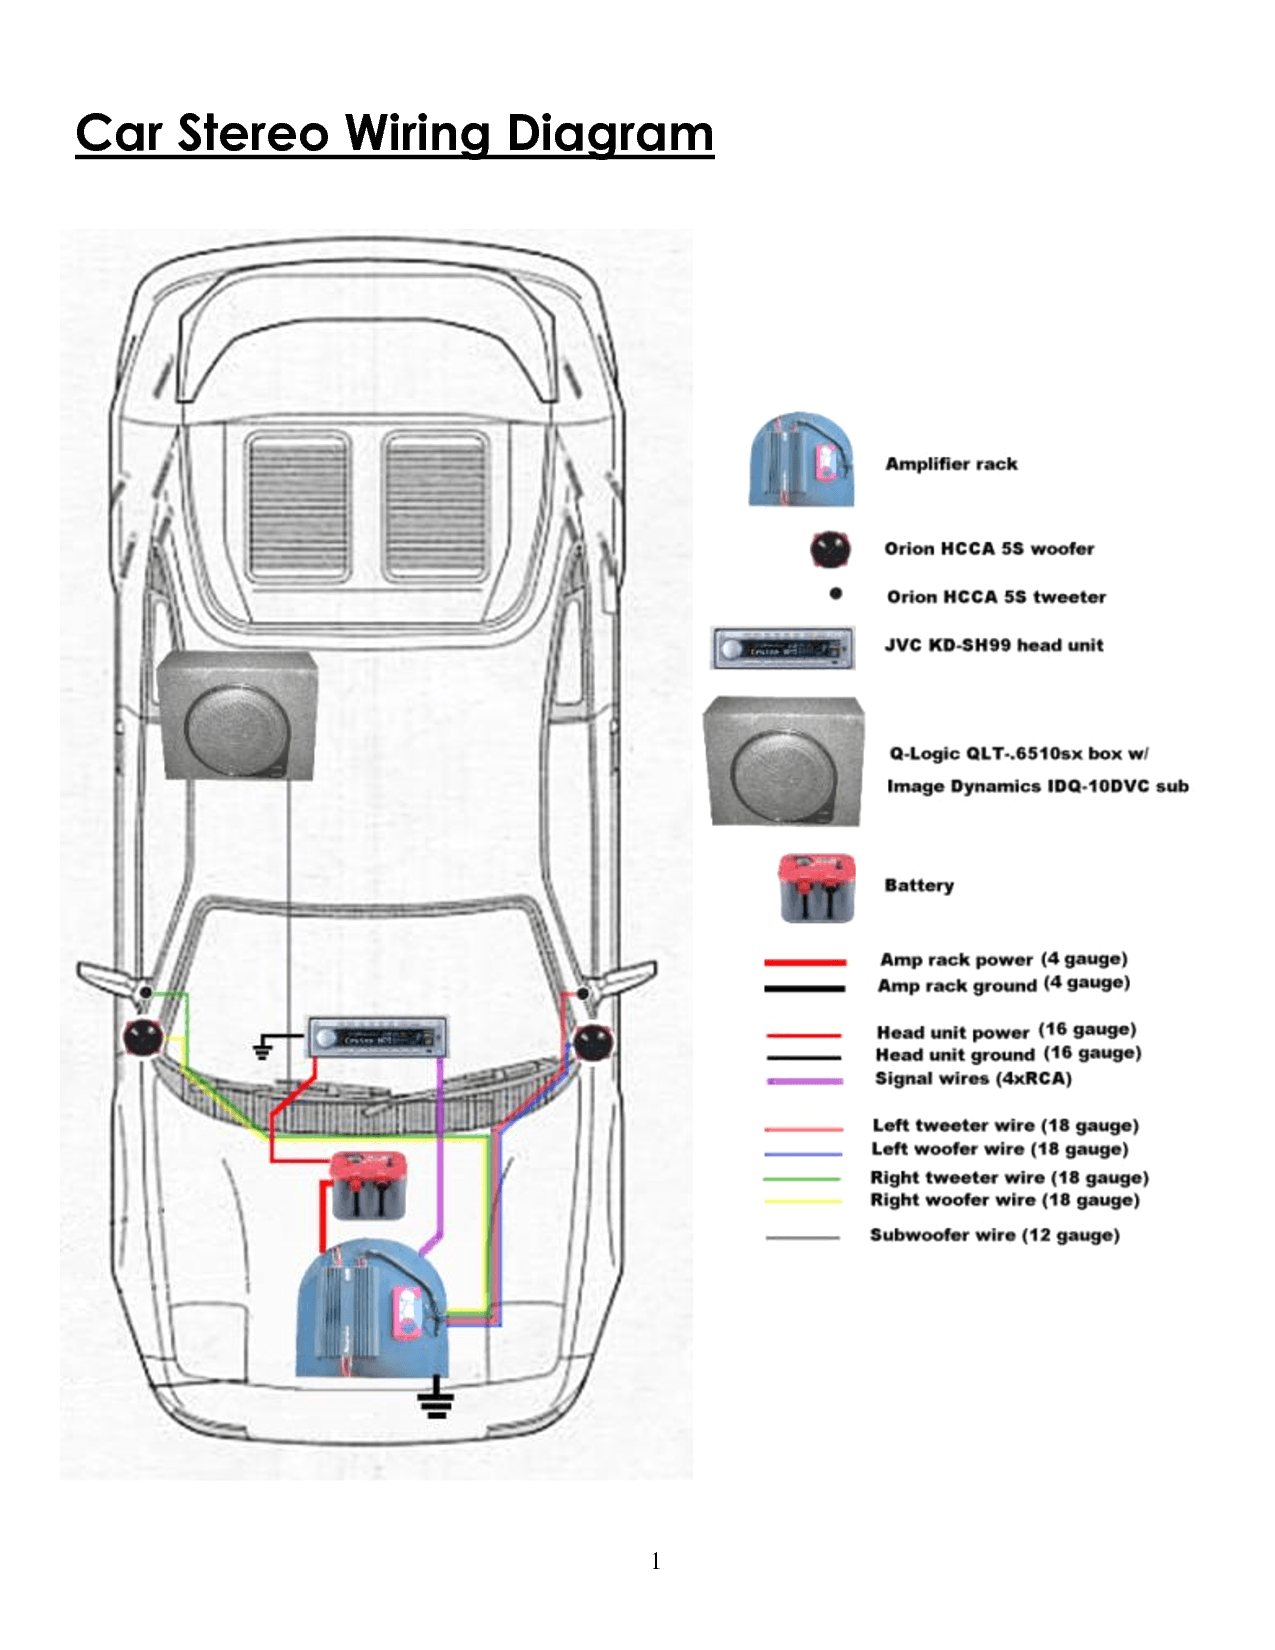 medium resolution of wiring diagram for a car stereo amp and subwoofer